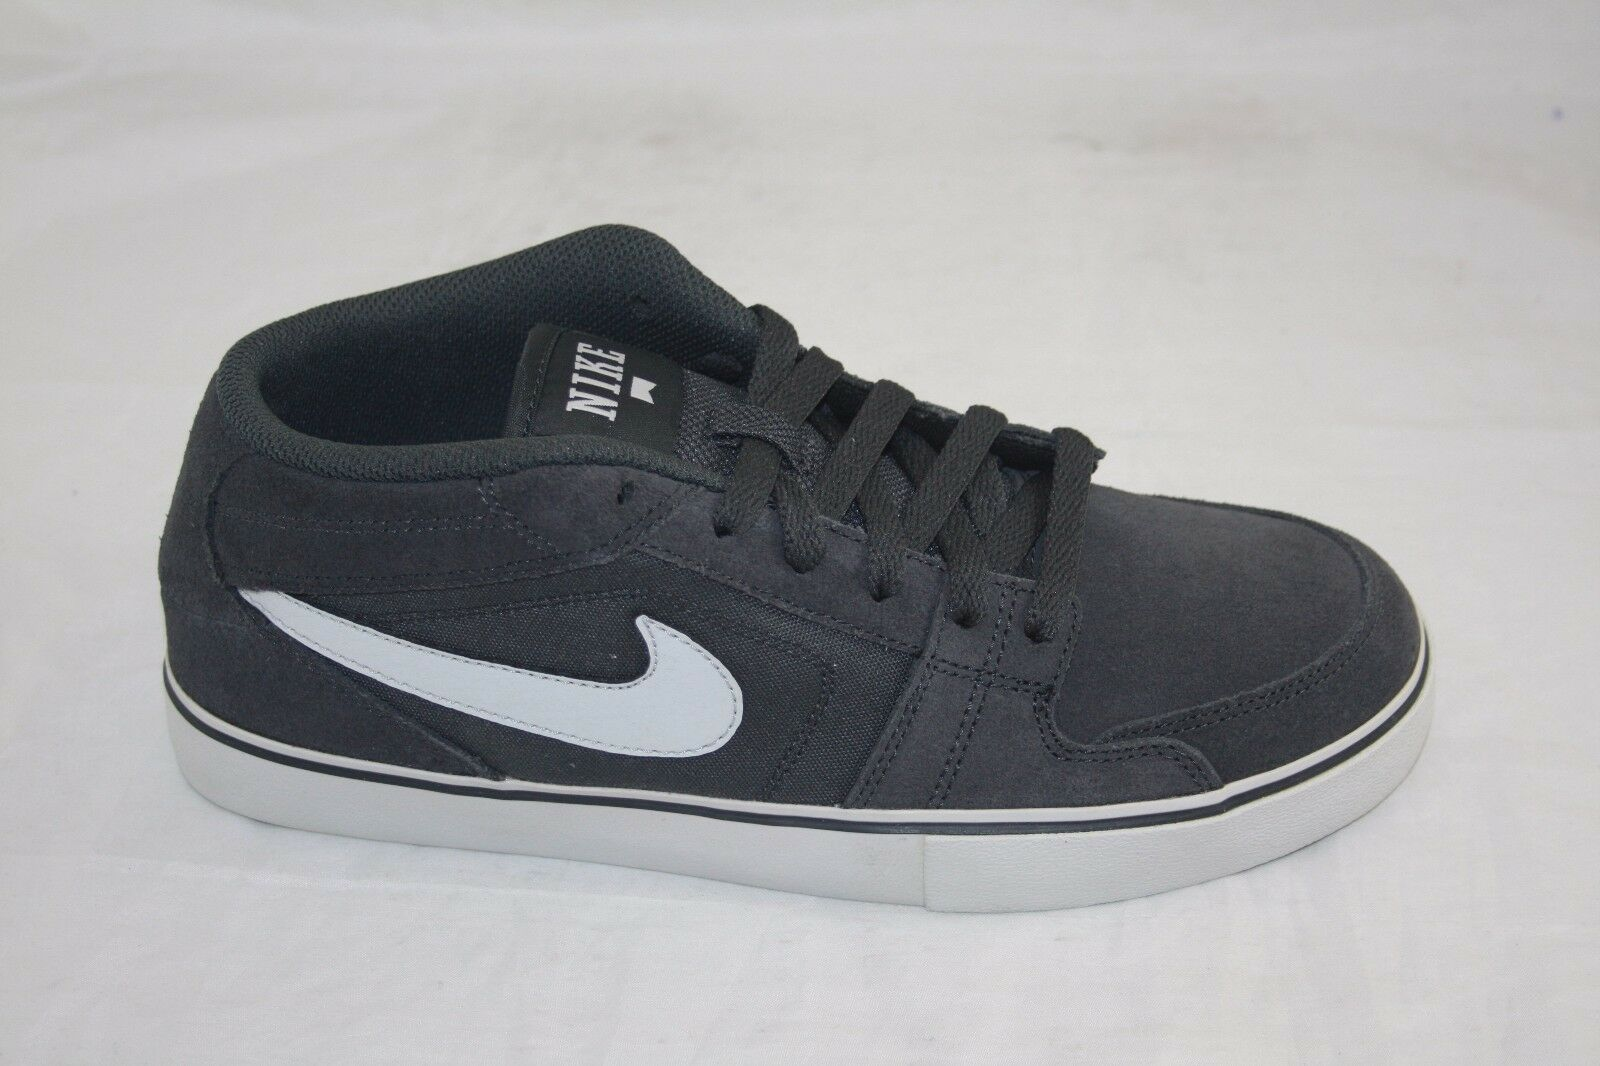 NIKE MEN'S RUCKUS MID  LR  508265-004 ANTHRACITE/NEUTRAL GREY  MSRP Price reduction The latest discount shoes for men and women